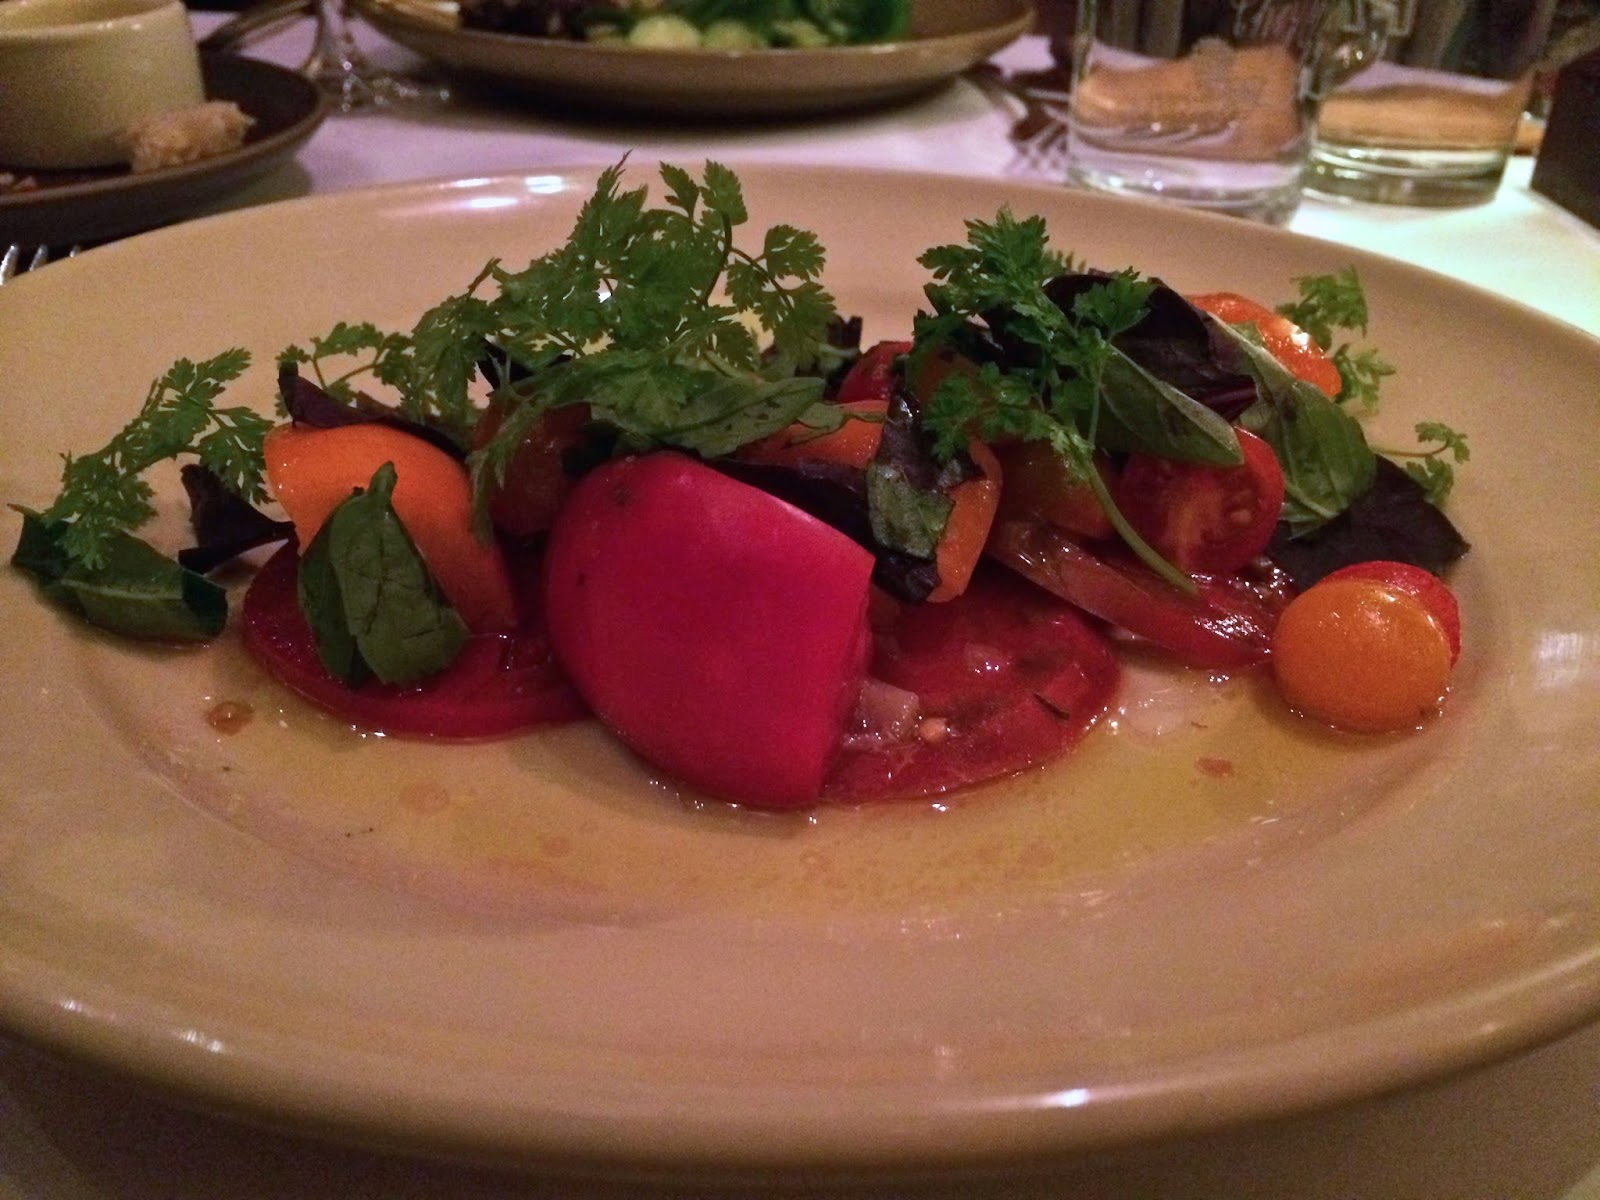 Heirloom Tomato Salad at Chez Panisse Cafe